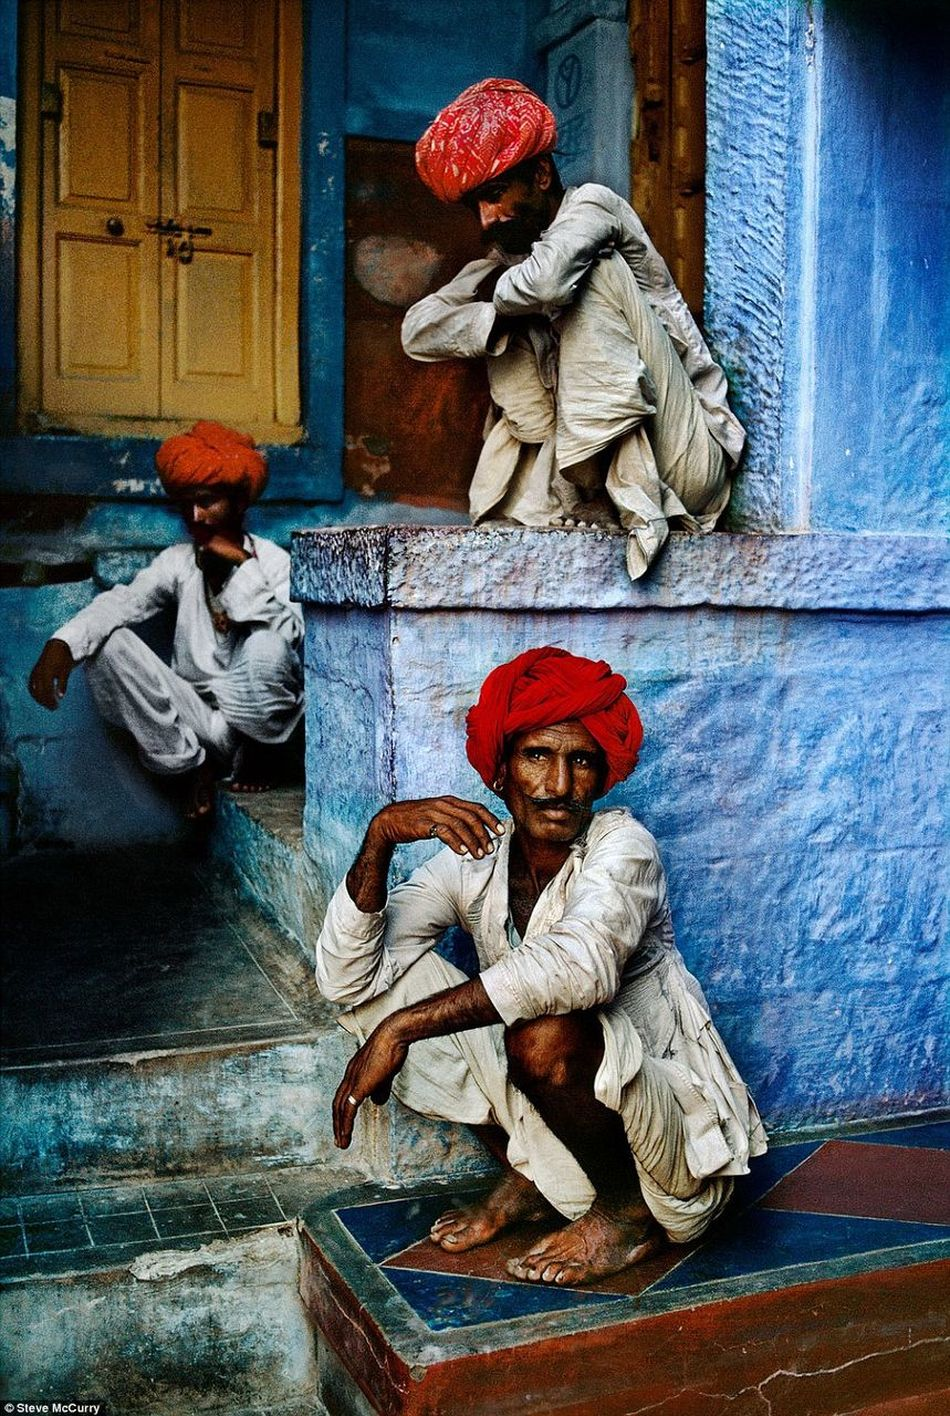 Indian Farmer Real People, Real Lives Lifestyles JodhpurCity Rajasthan Indian 1996gallery